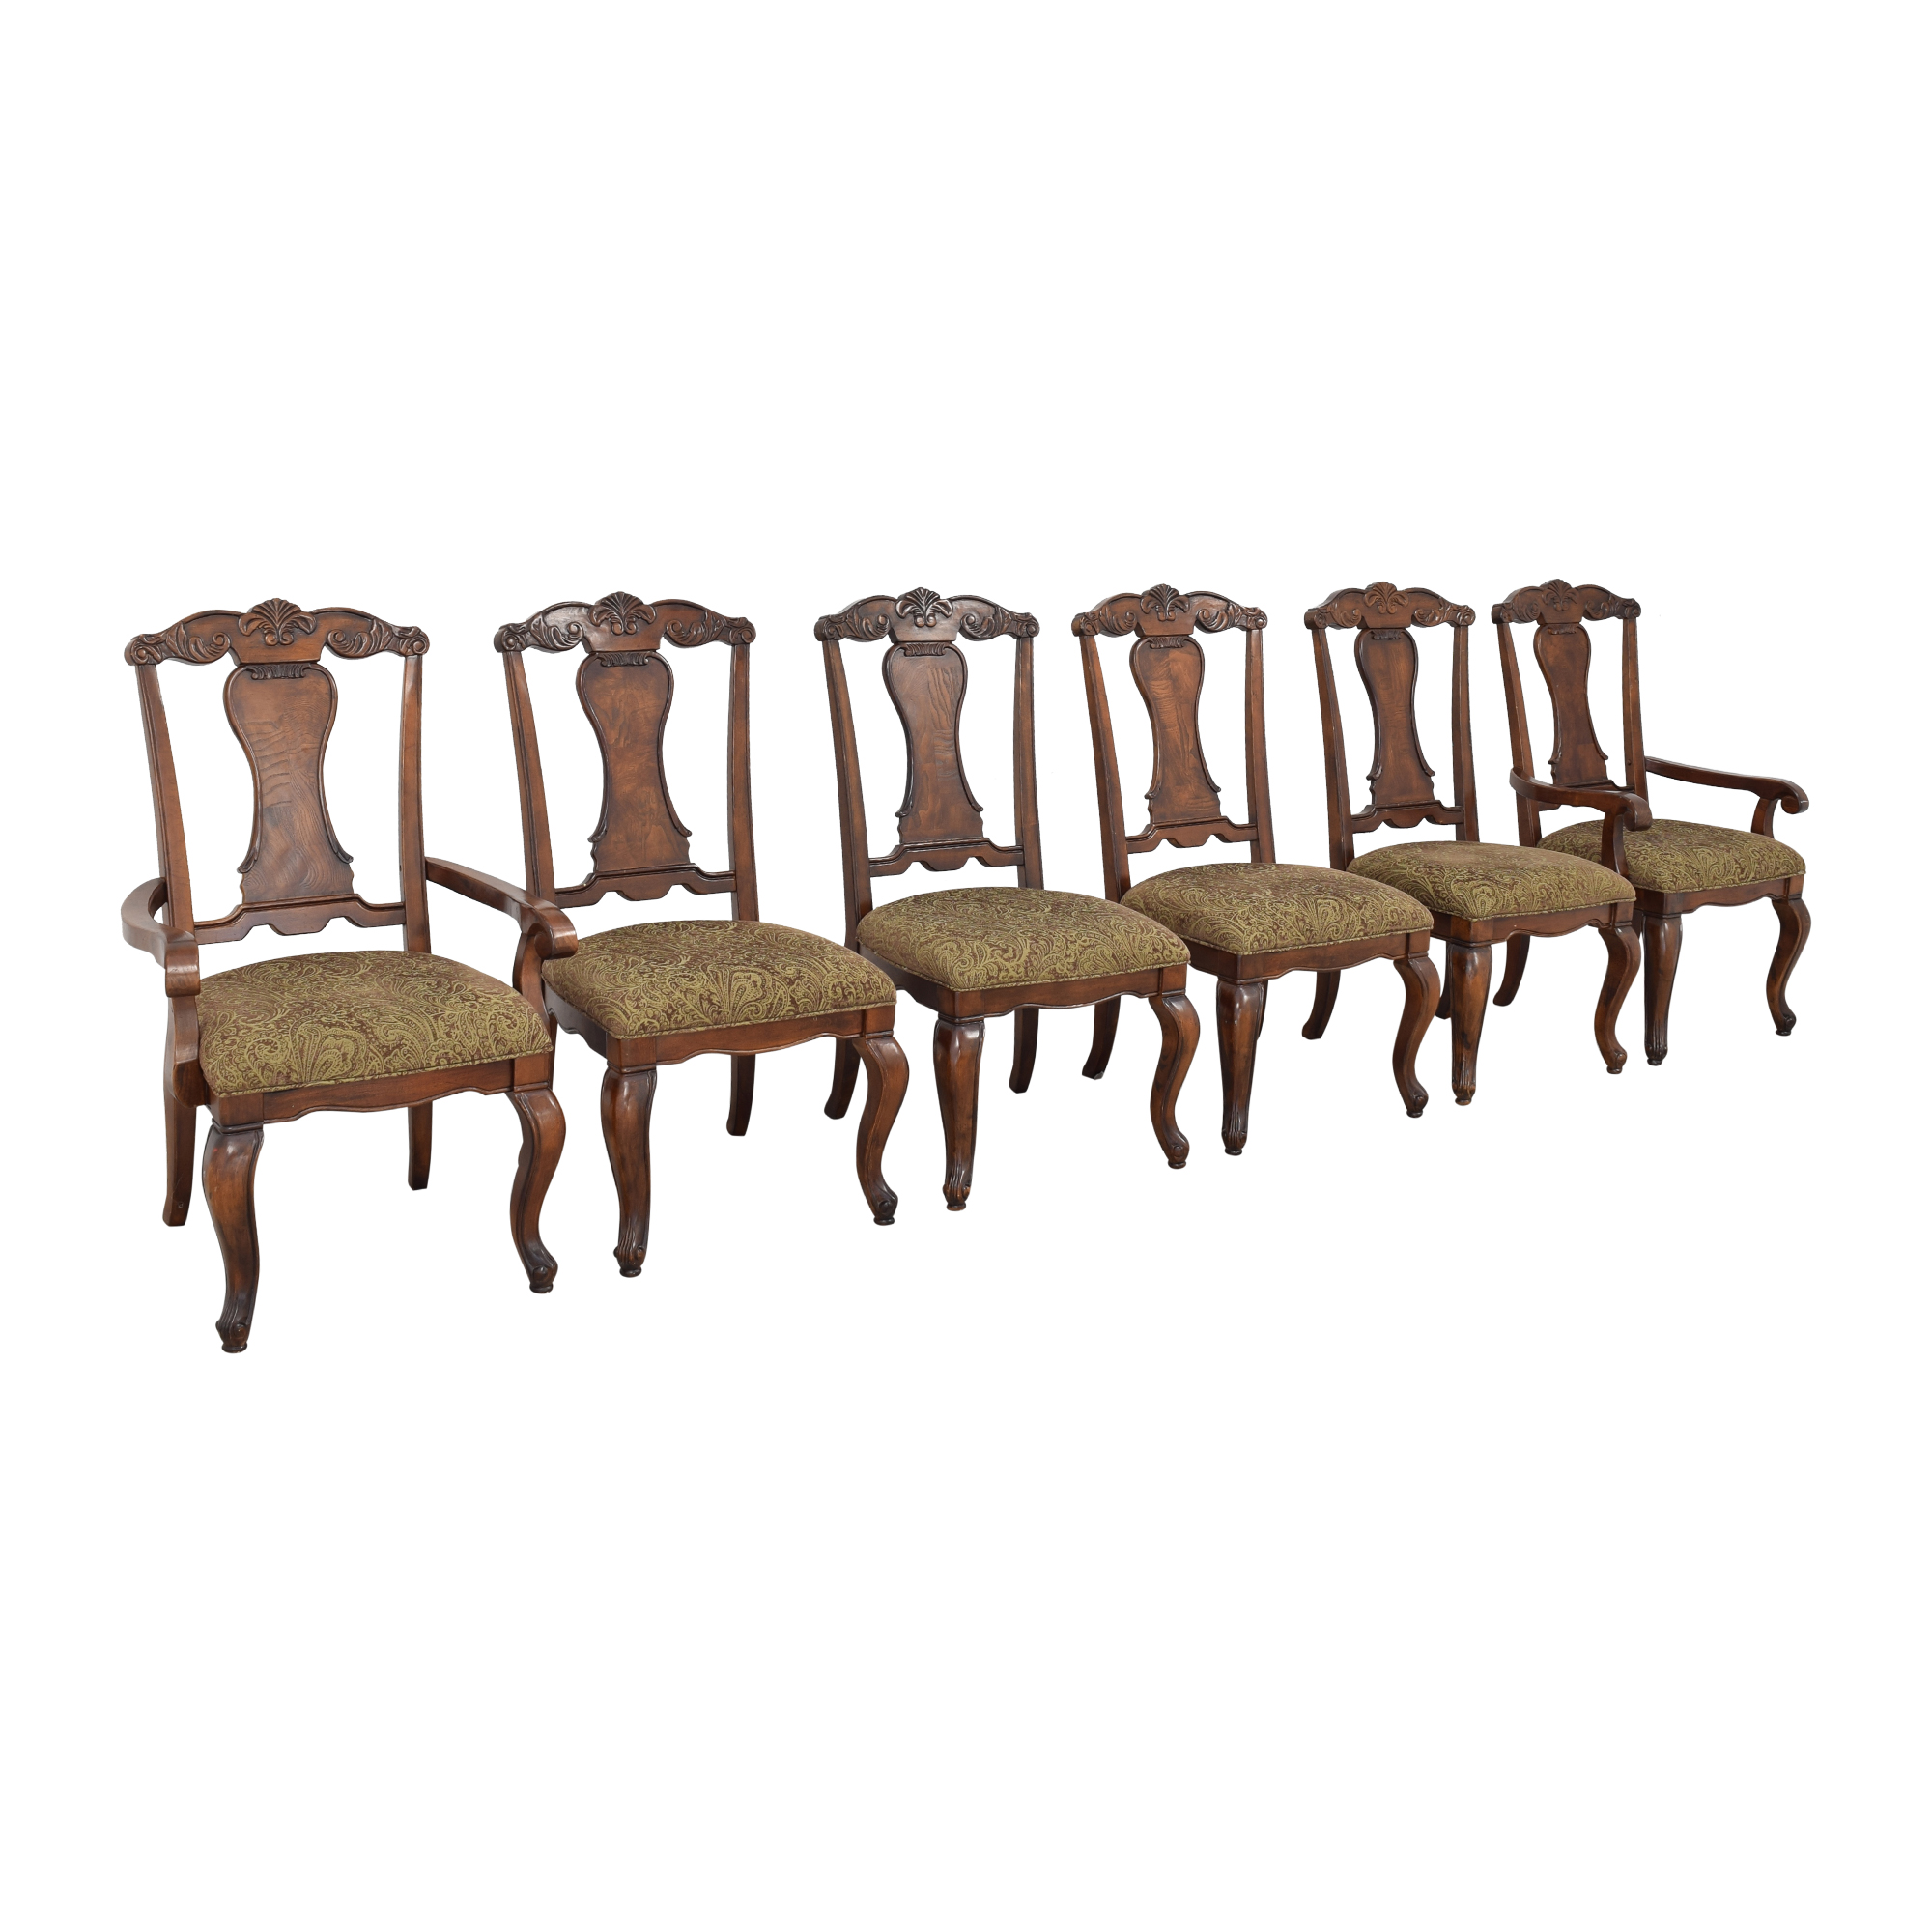 Raymour & Flanigan Raymour & Flanigan Carved Dining Chairs price